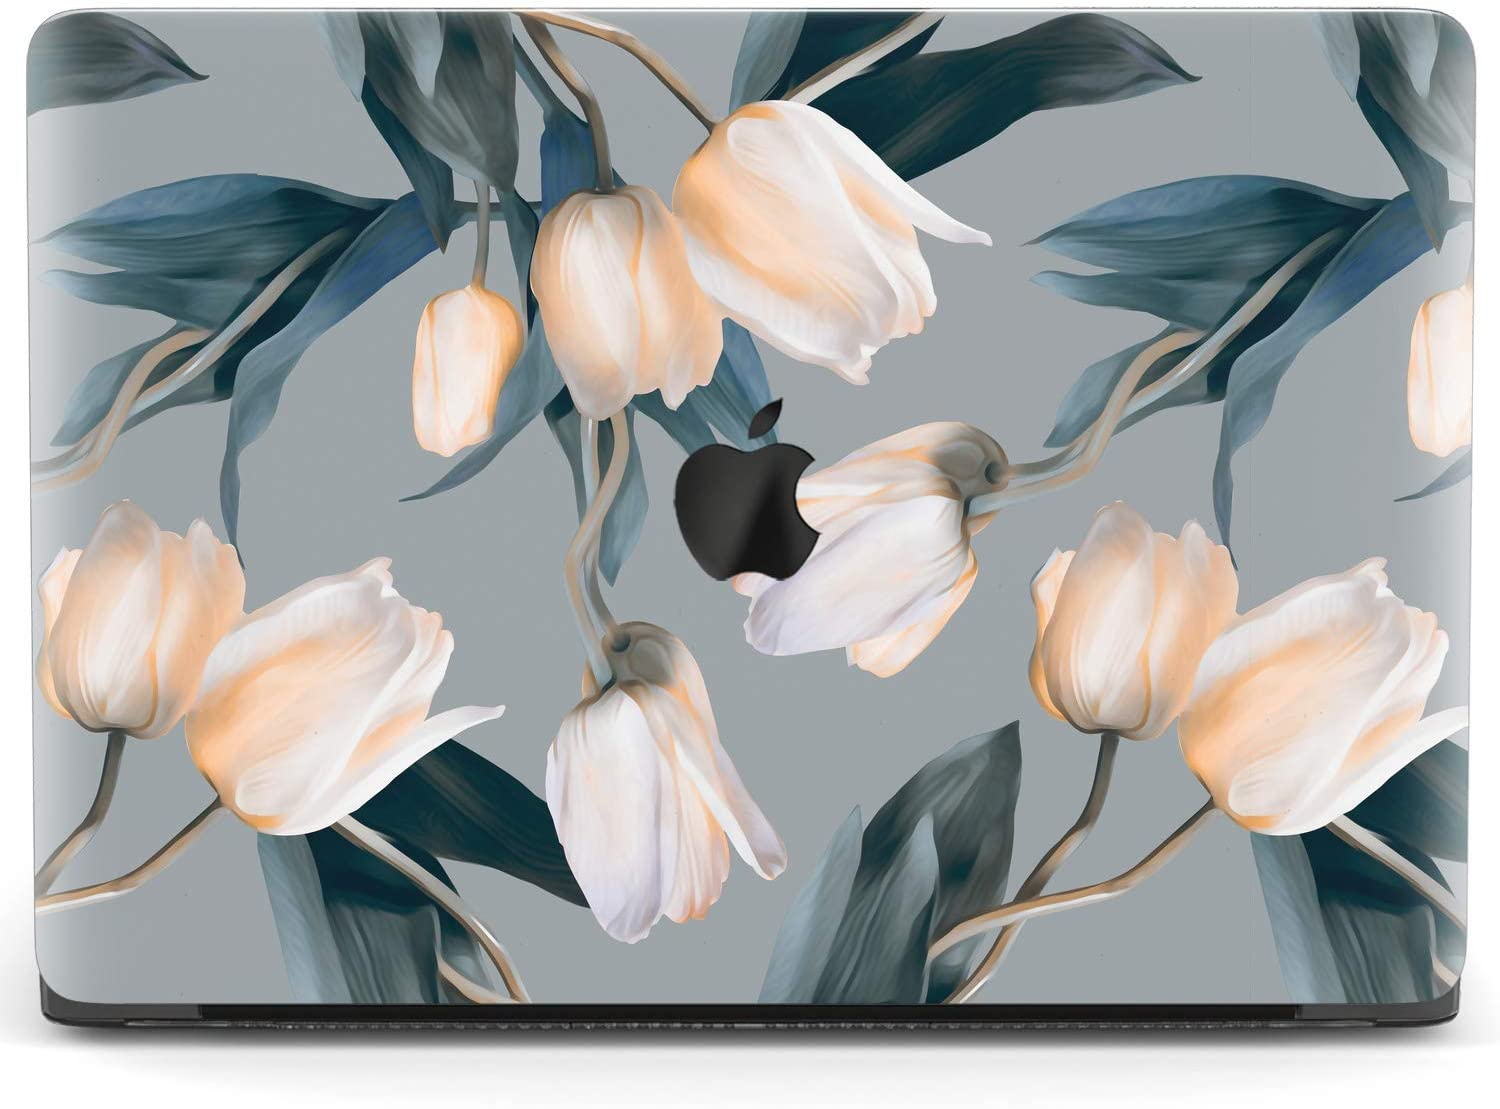 Mertak Hard Case for Apple MacBook Pro 16 Air 13 inch Mac 15 Retina 12 11 2020 2019 2018 2017 Protective Plastic Clear Design Floral Spring Aesthetic Print Tulips Laptop Cover White Flowers Gray